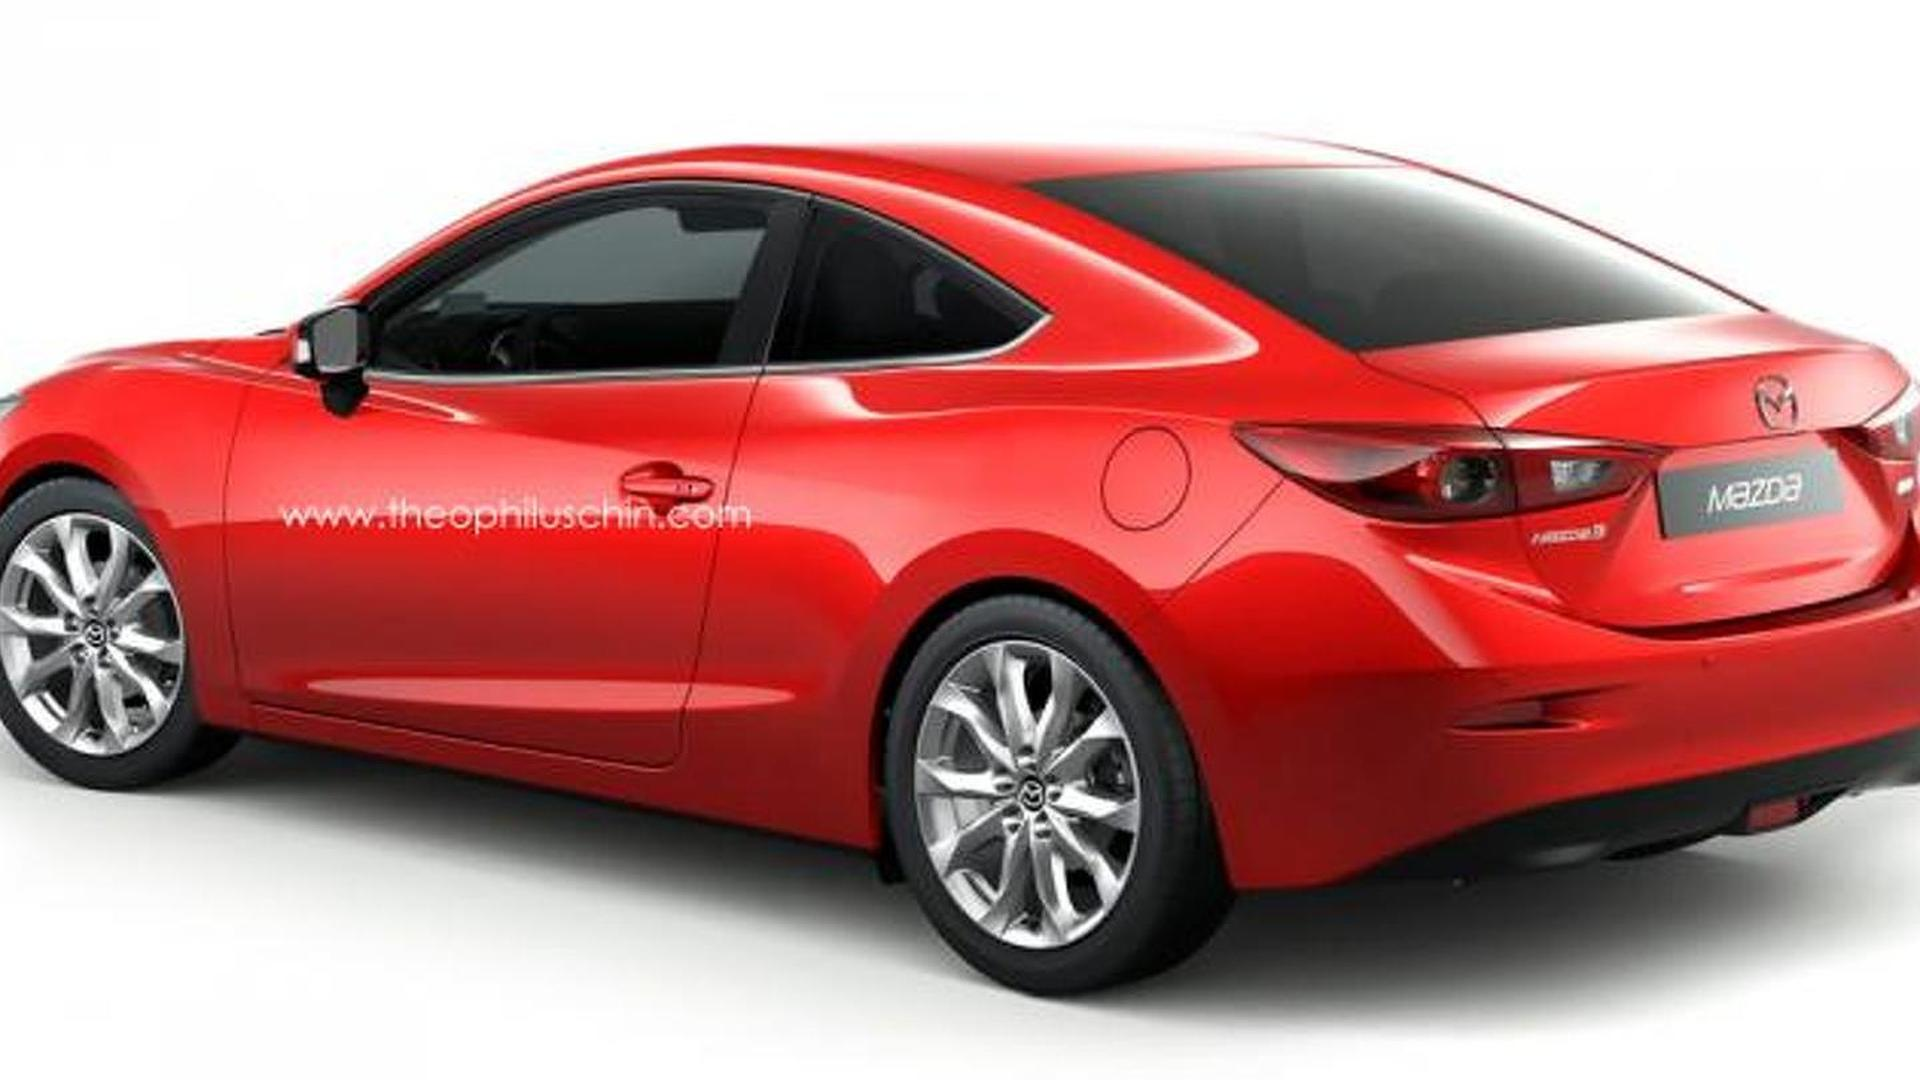 2014 Mazda3 envisioned as a coupe